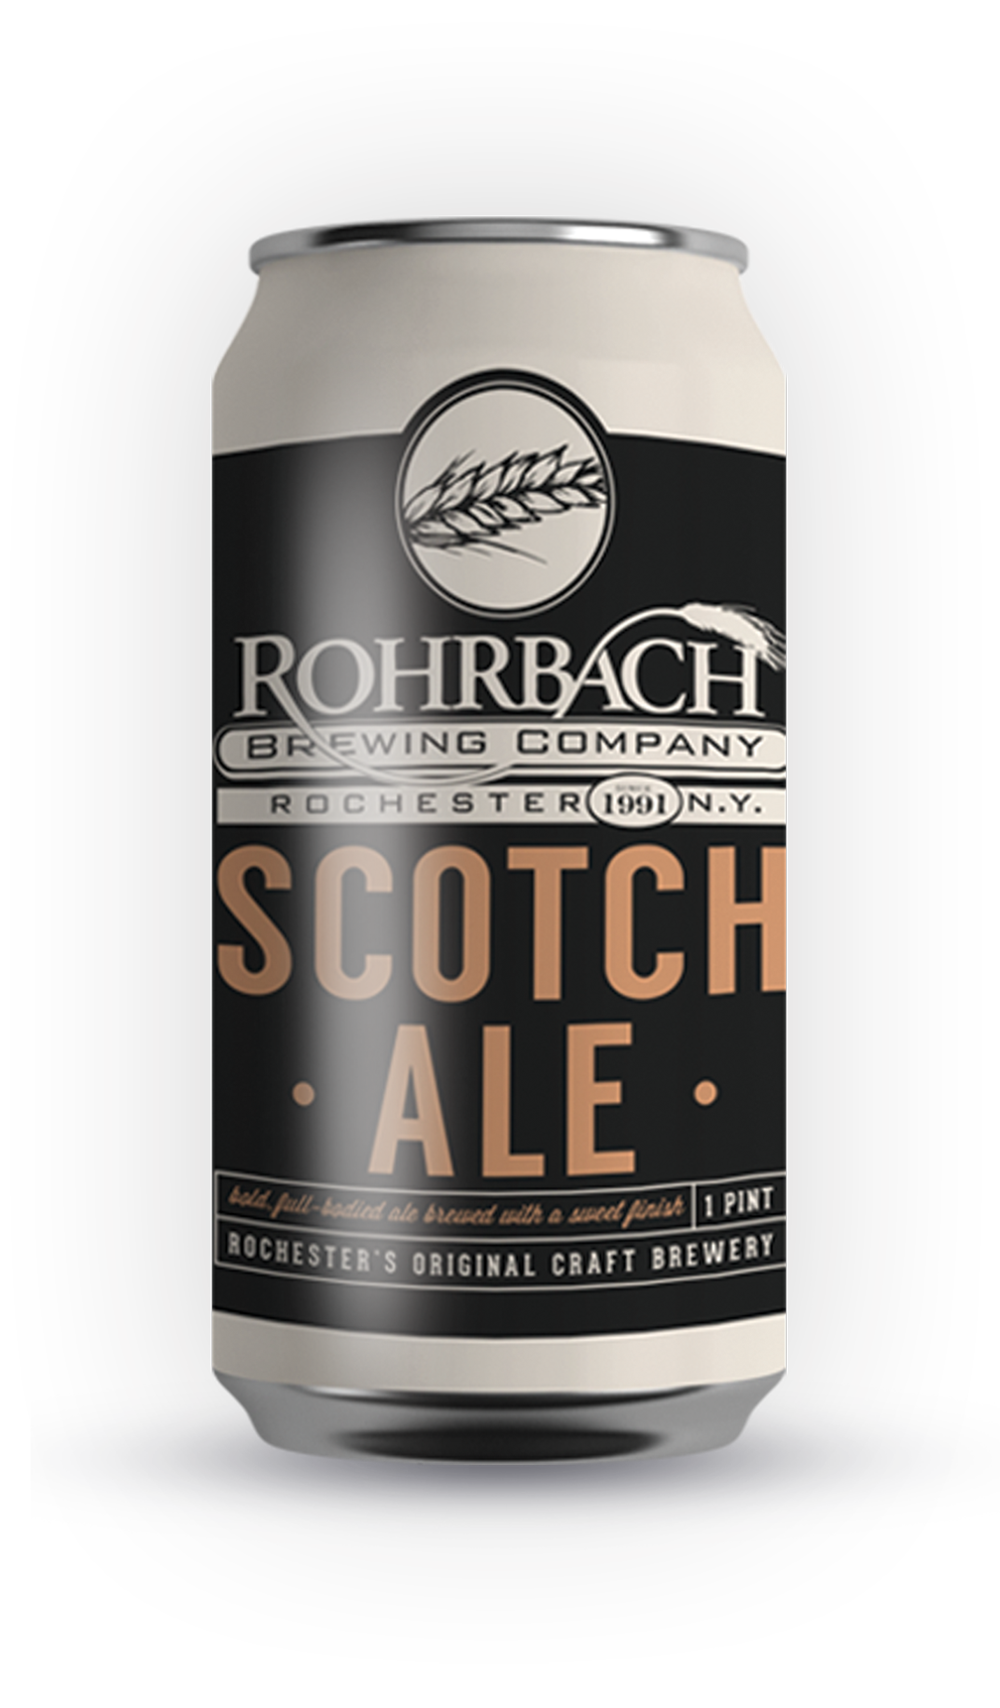 SCOTCH ALE  Our flagship brew, Rohrbach's famous Scottish-style Ale is a strong, full-bodied ale with a sweet caramel finish.  ABV 6.8% | IBU 16 | SRM 28